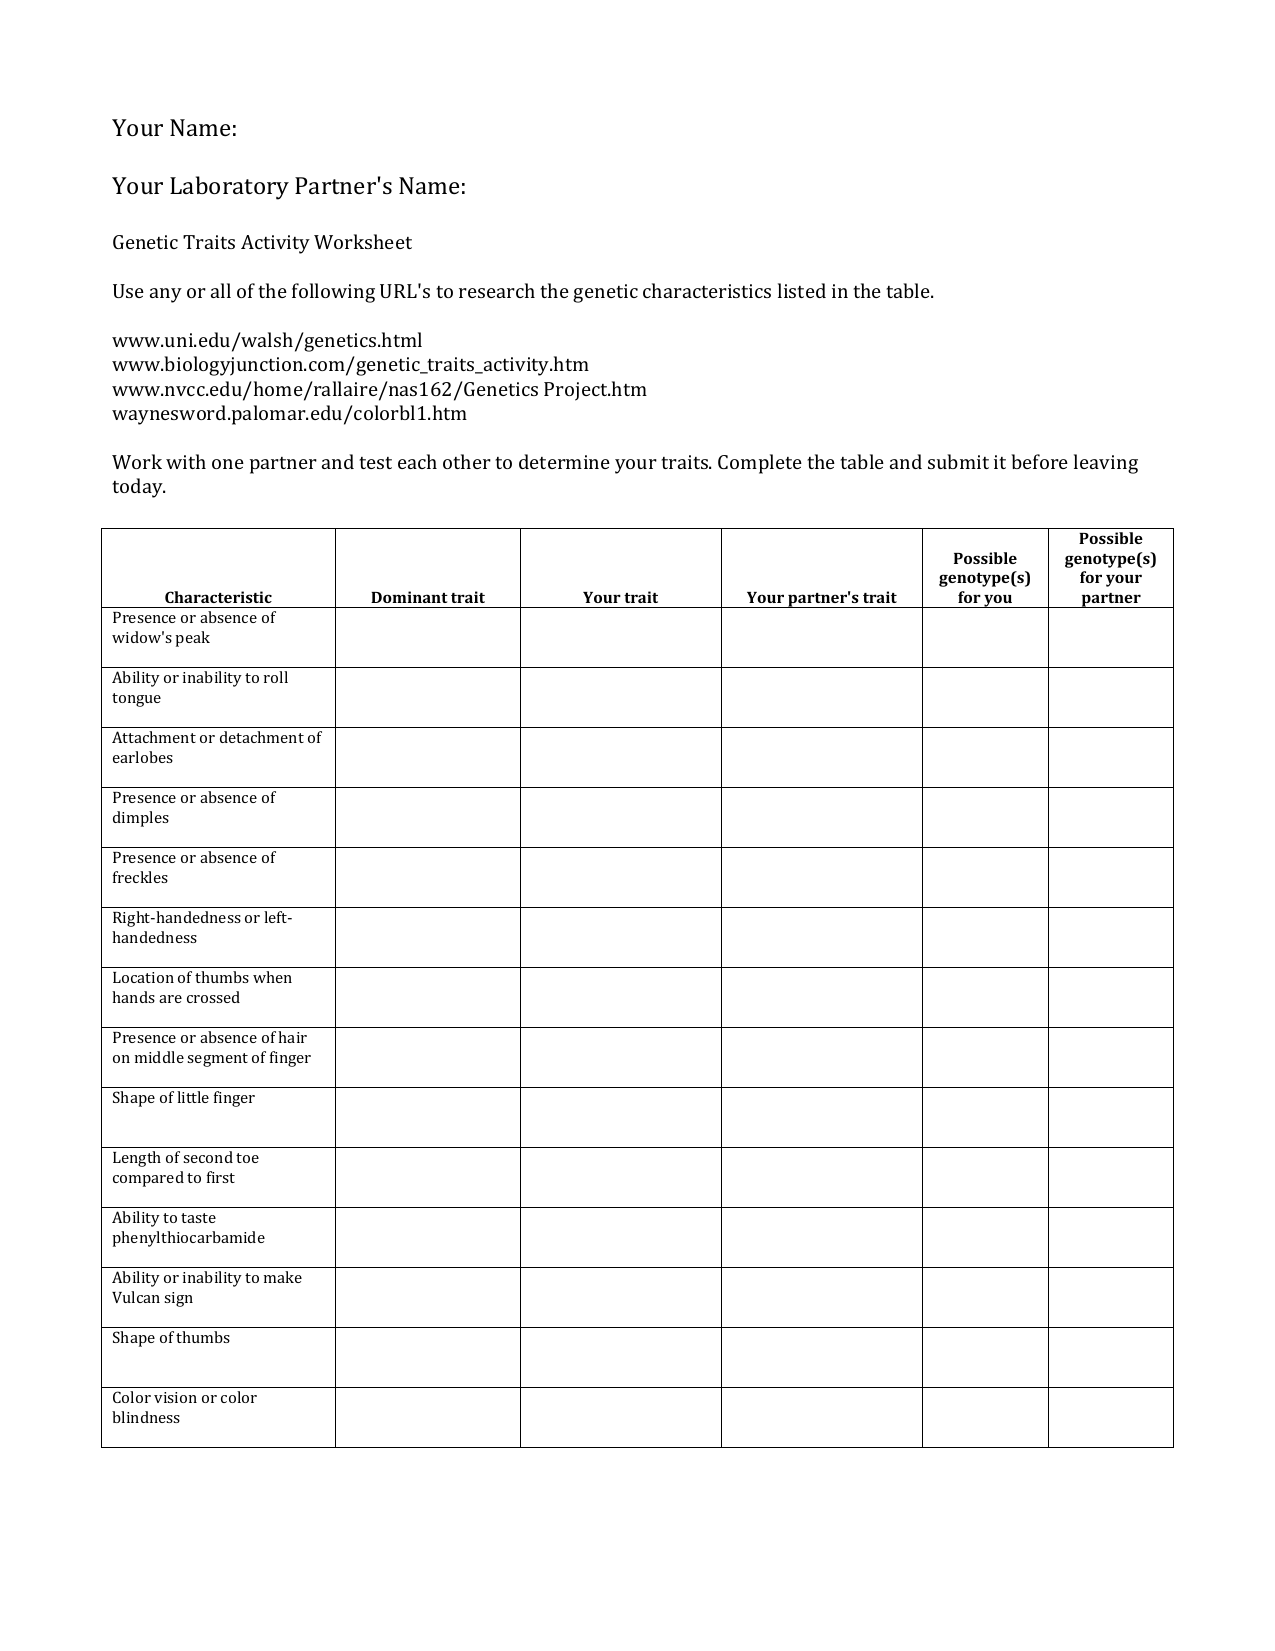 Genetic Traits Worksheet